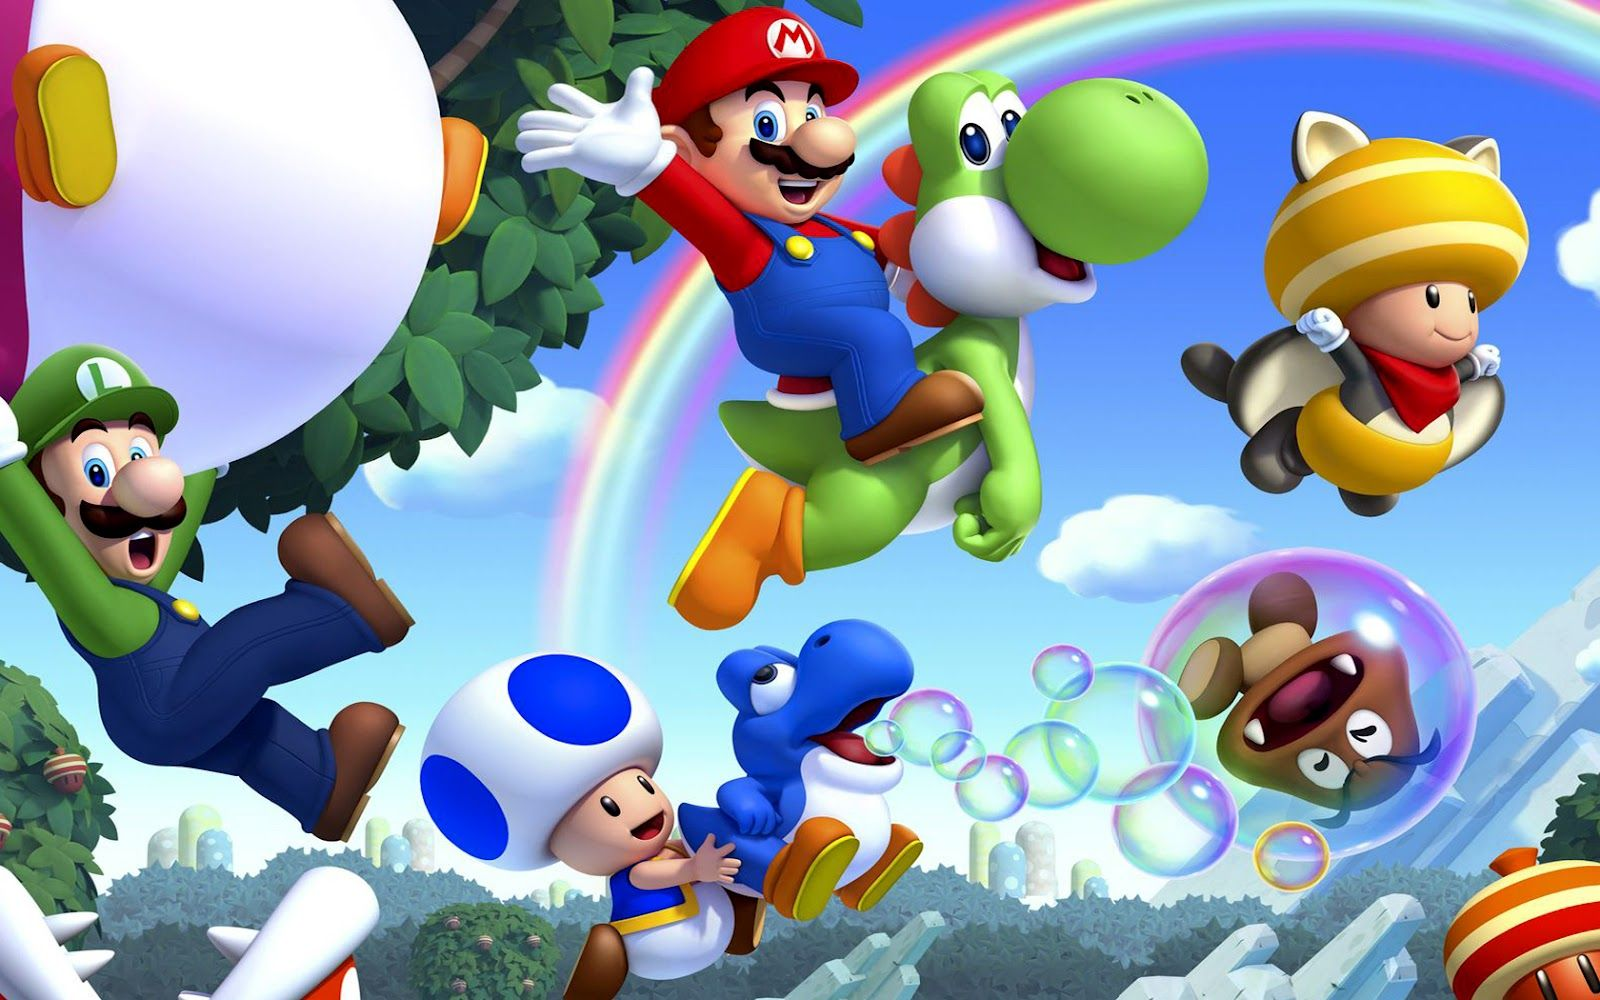 1600x1000 Super Mario bros 2 Wii U Wallpaper |Gamebud